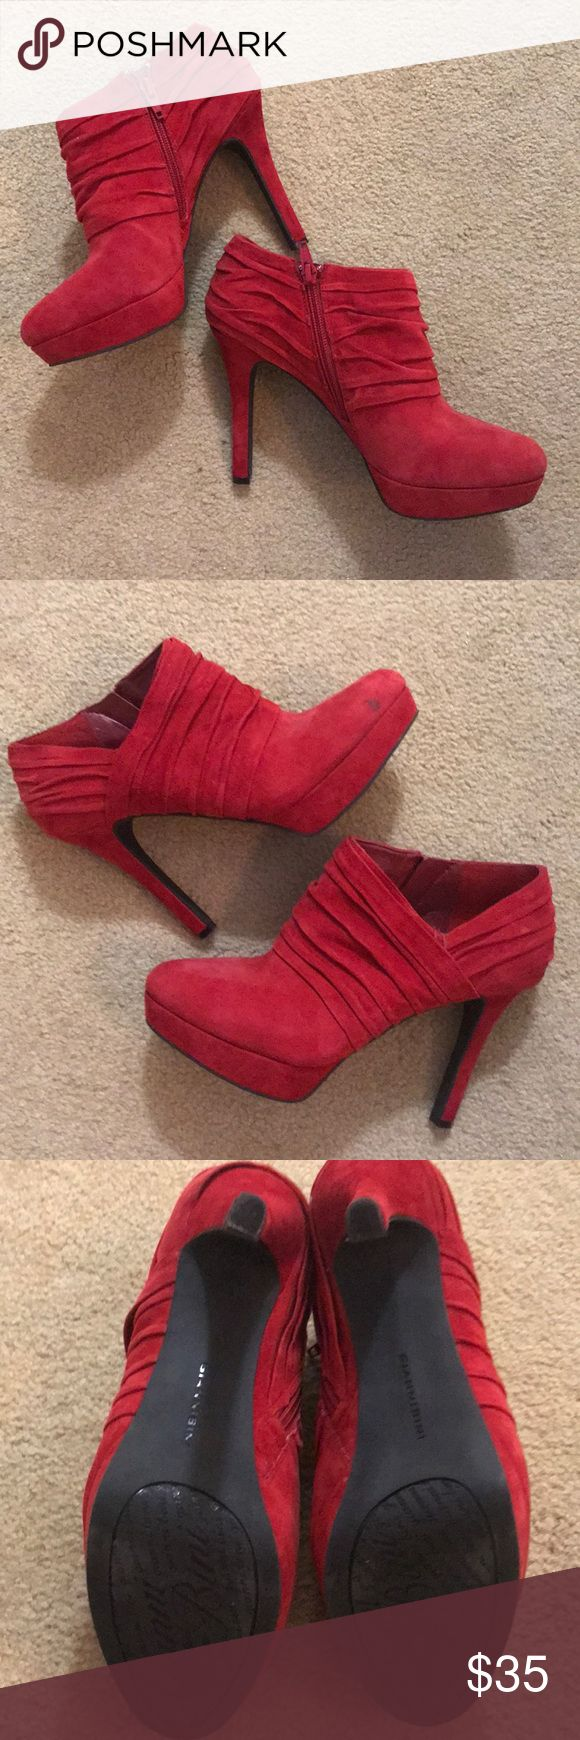 Gianni Bini Red Suede Platform Bootie Gianni Bini Red Suede Ankle Bootie Small Scuff on right toe Gianni Bini Shoes Ankle Boots & Booties